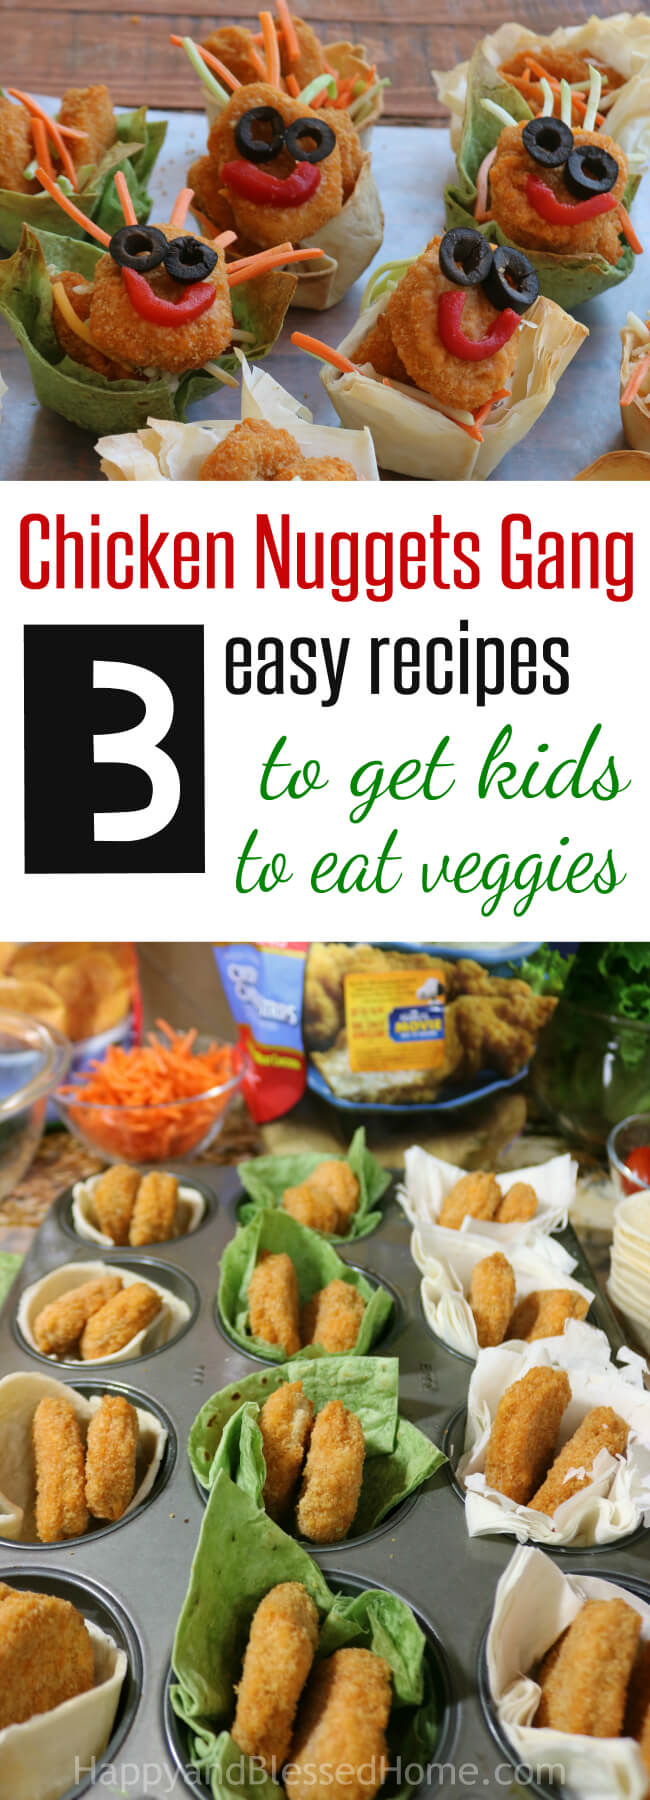 So simple - why didn't I think of this sooner - Less than 20 minutes and my kids are eating veggies - brillant